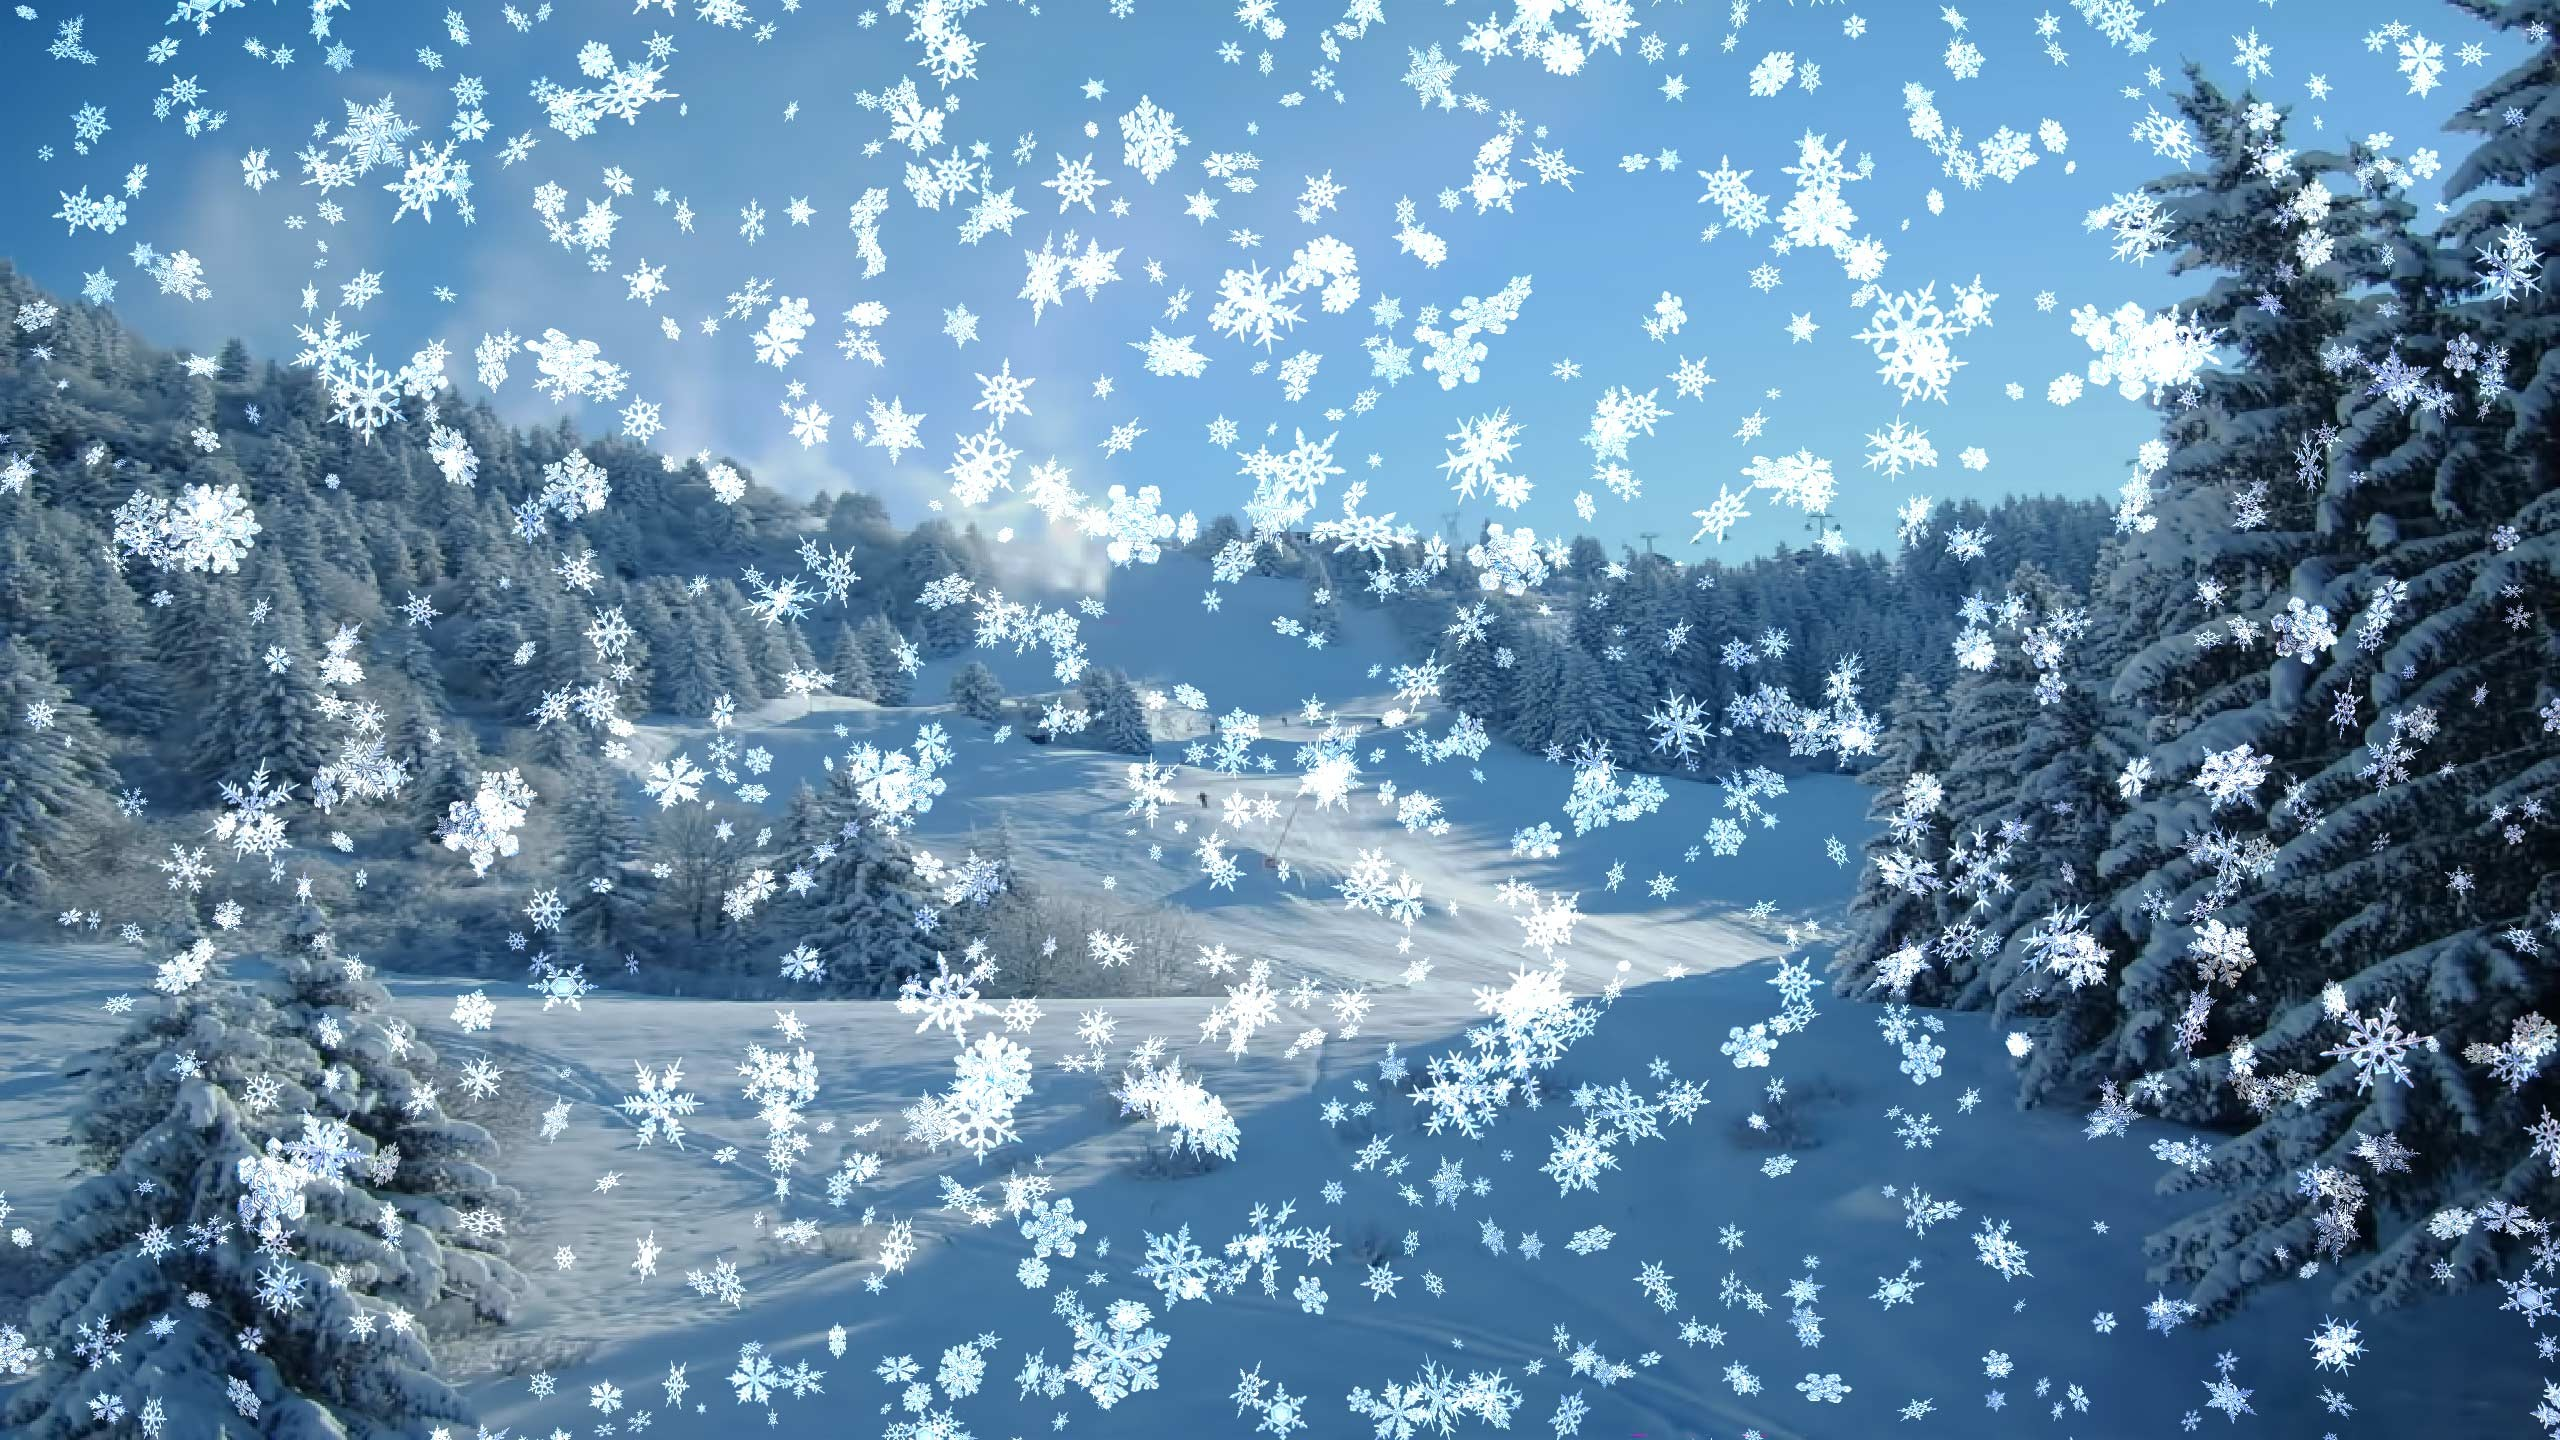 3d Moving Desktop Wallpaper For Windows 7 Falling Snow Animated Wallpaper 57 Images